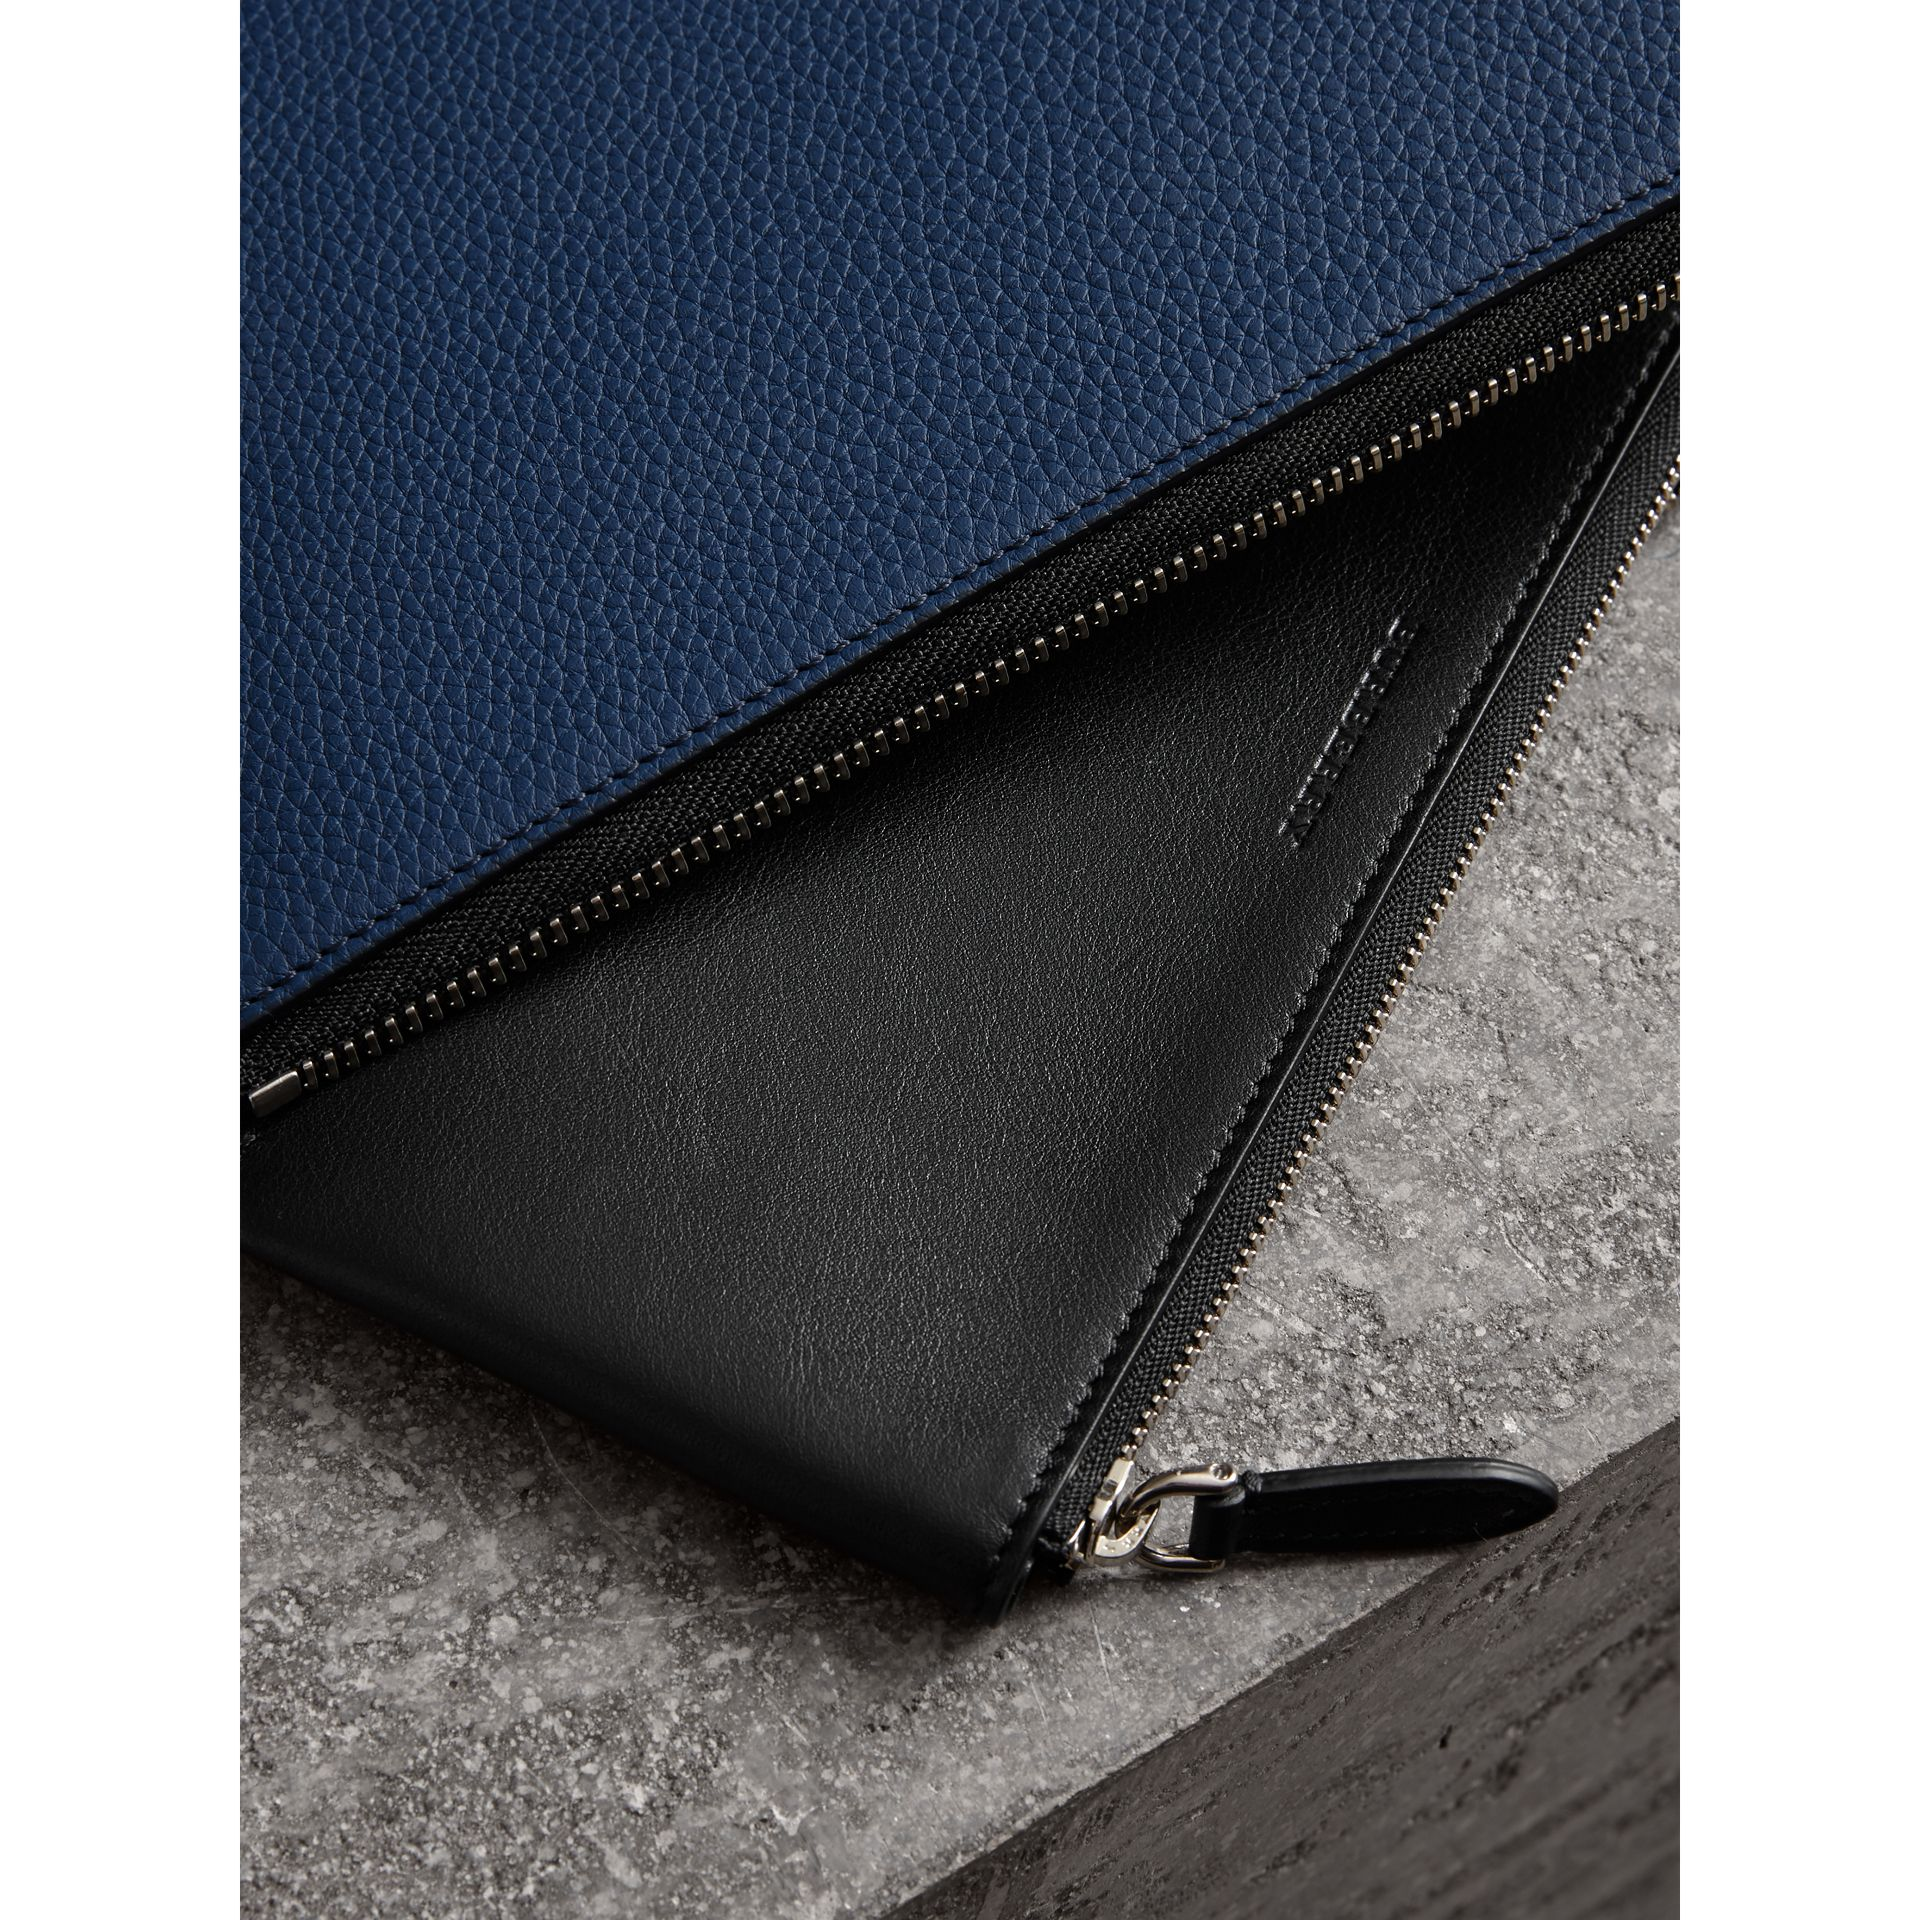 Two-tone Grainy Leather Travel Wallet in Bright Ultramarine - Men | Burberry Singapore - gallery image 4